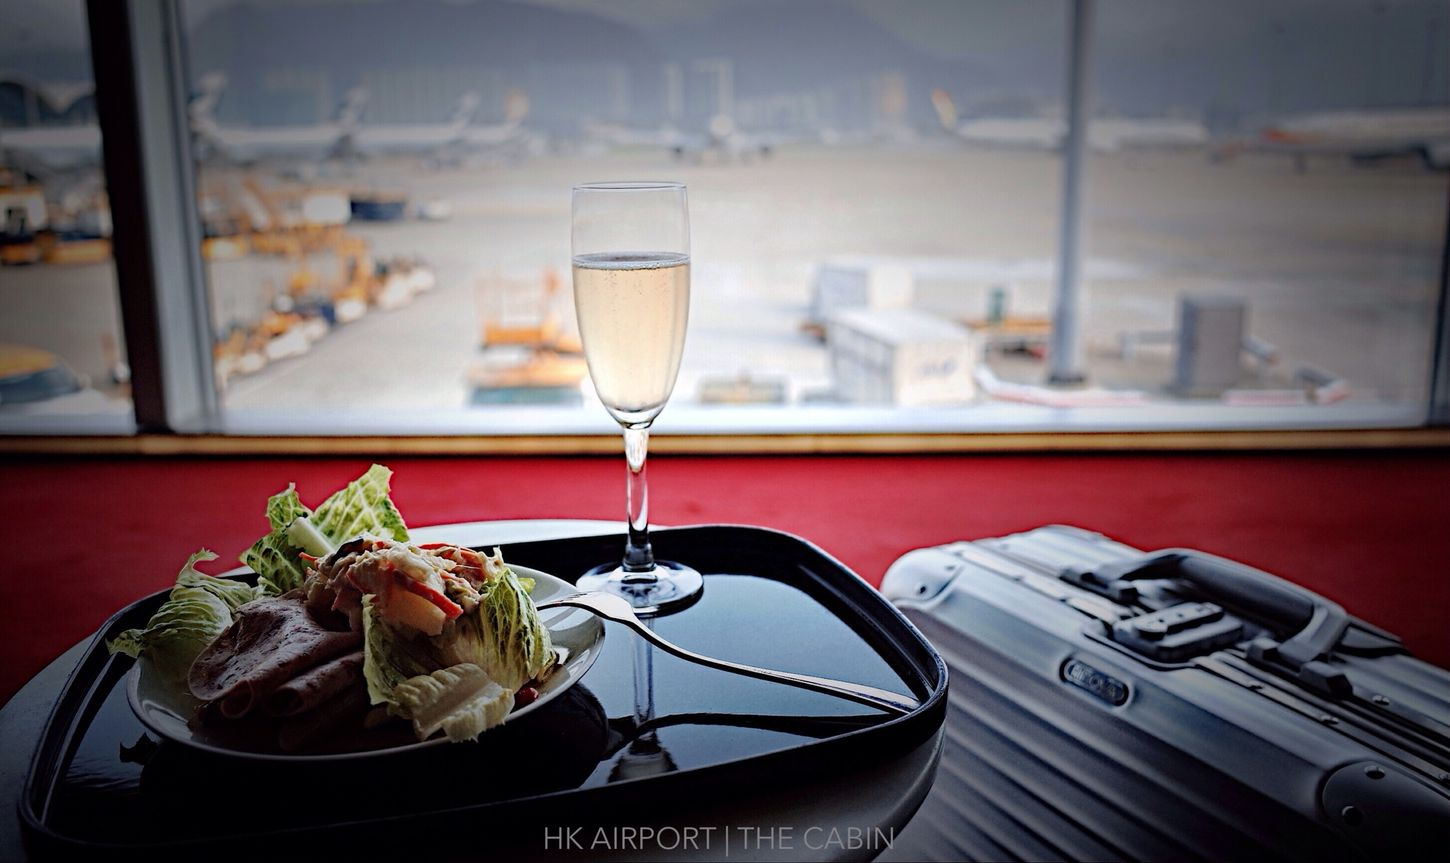 PM 4:58 THE CABIN, 繼續休息等待下個航程, 回家的心情是愉快的。。。Continue to rest waiting for the next flight, the mood back home is happy. . . Travel Ricoh Gr The Cabin Rimowa